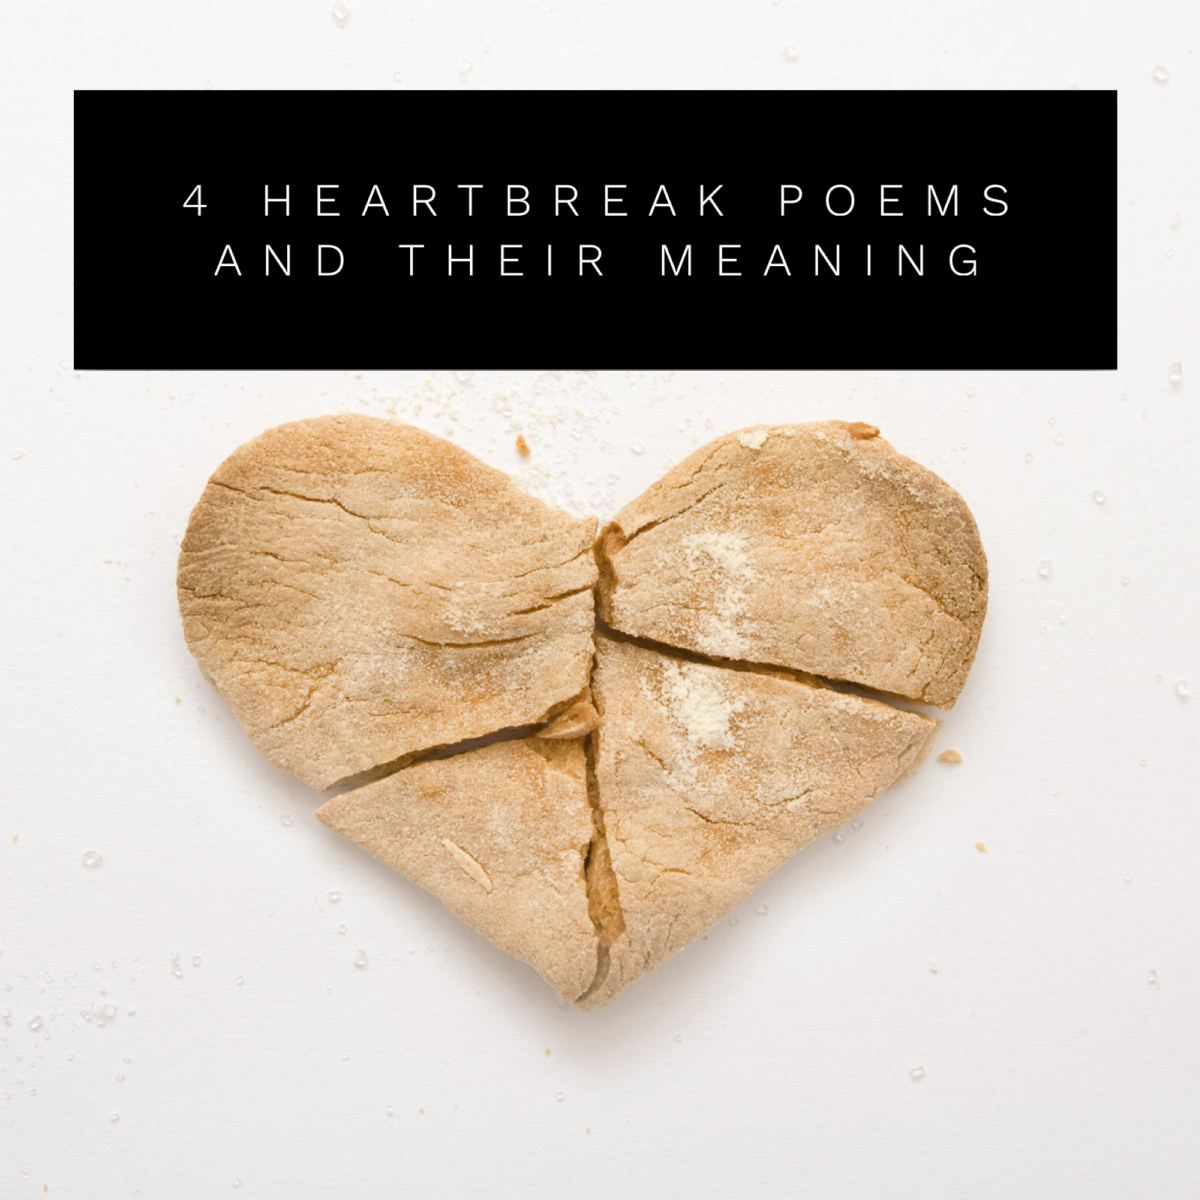 4 Heartbreak Poems and Their Meaning